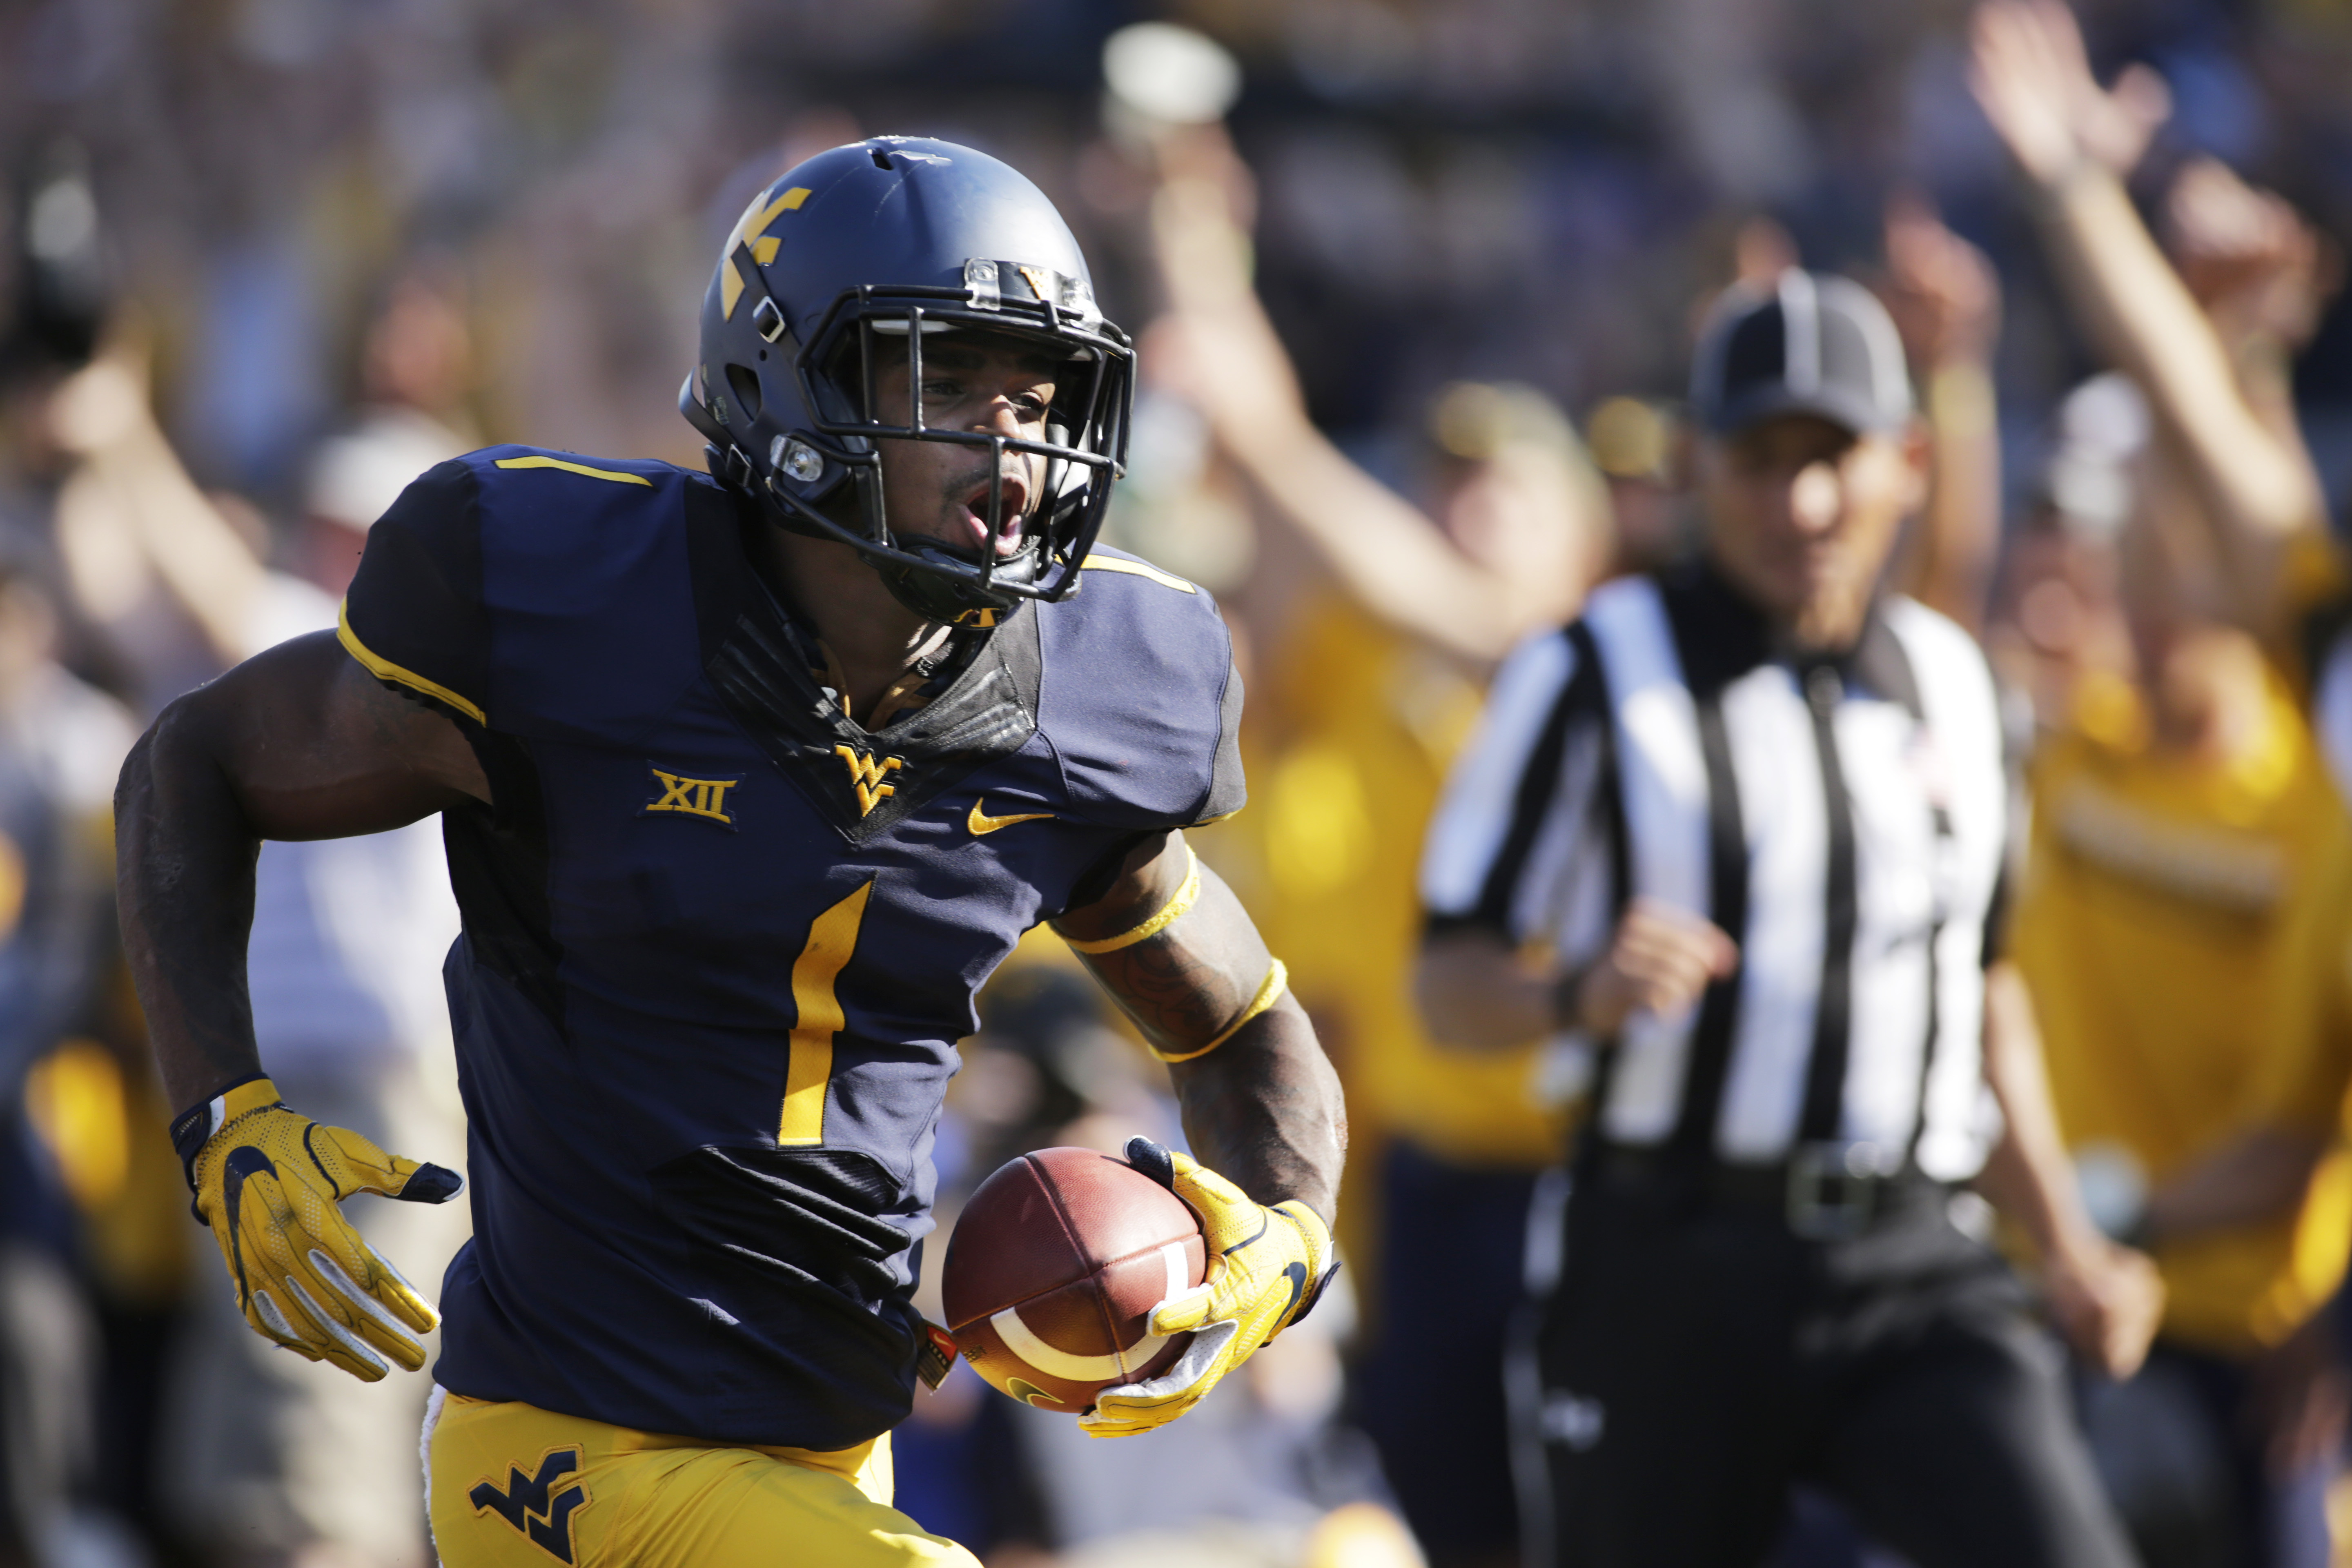 FILE - In this Sept. 10, 2016, file photo, West Virginia wide receiver Shelton Gibson (1) runs for a touchdown after a catch during the first half of an NCAA college football game against Youngstown State, in Morgantown, W.Va. A year ago West Virginia rec